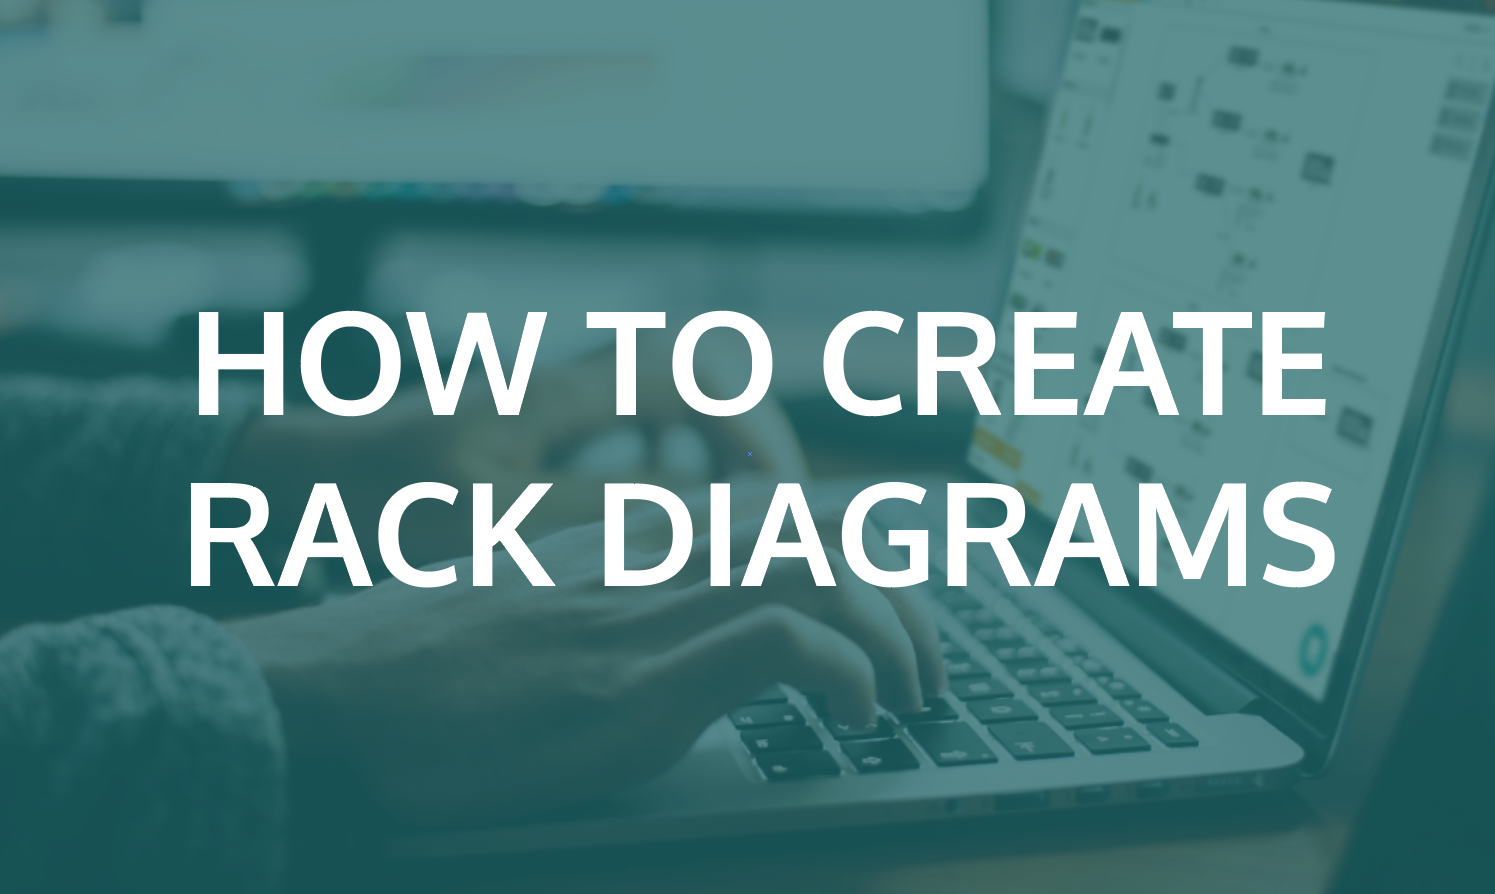 How To Create Rack Diagrams